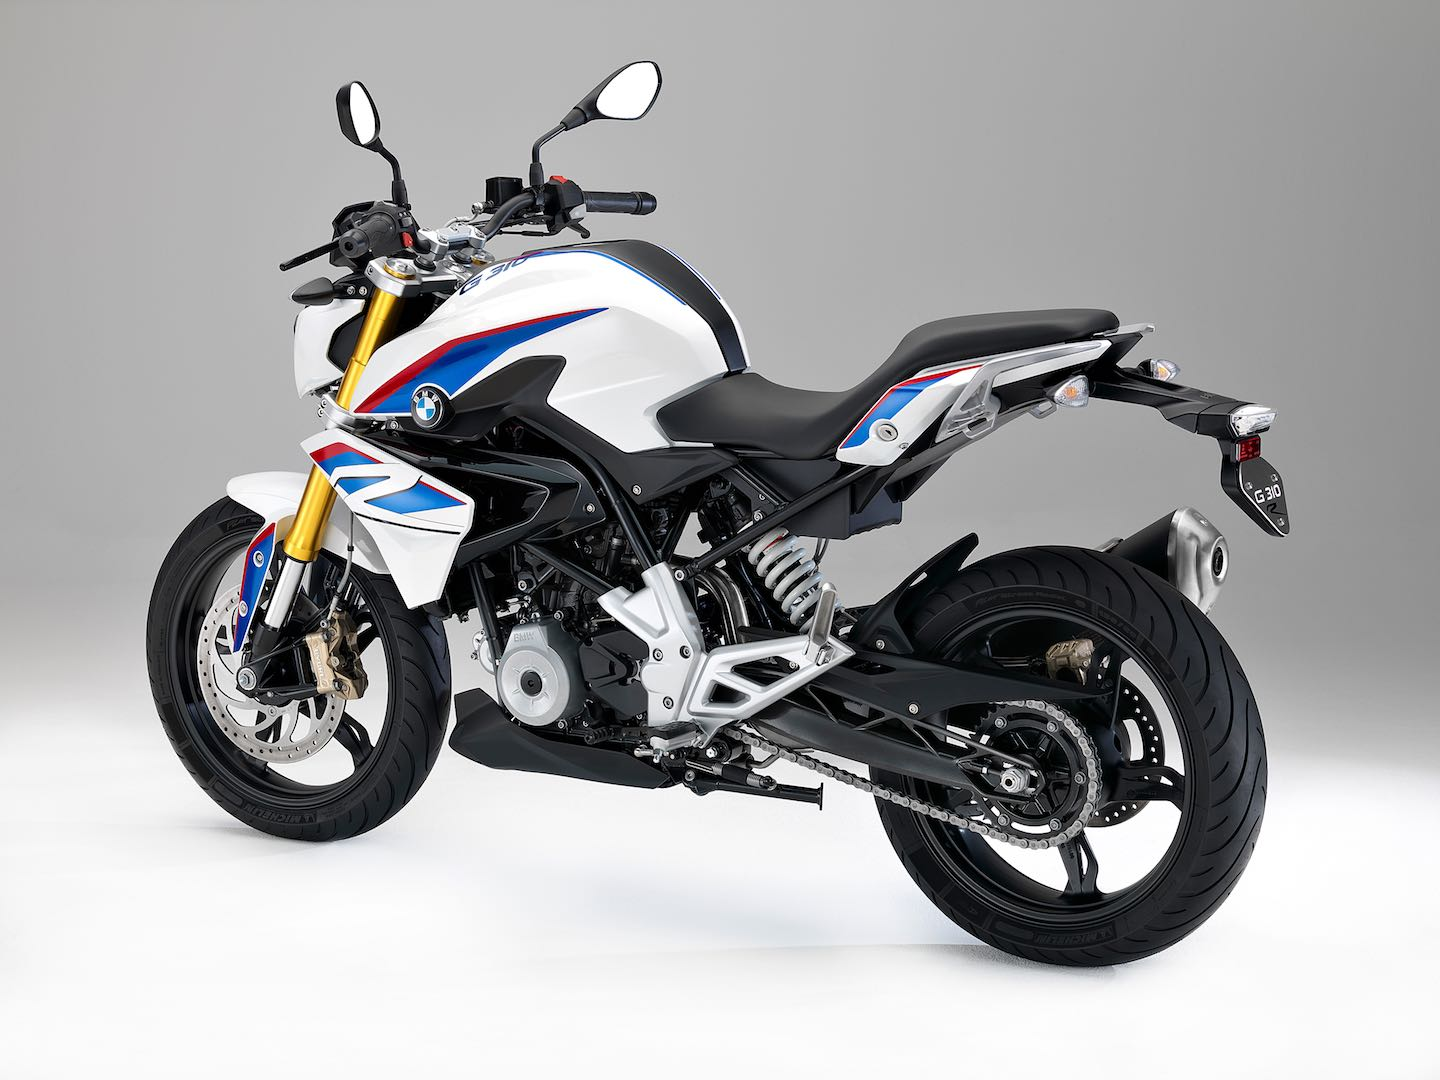 Seat Height Of Bmw G310r